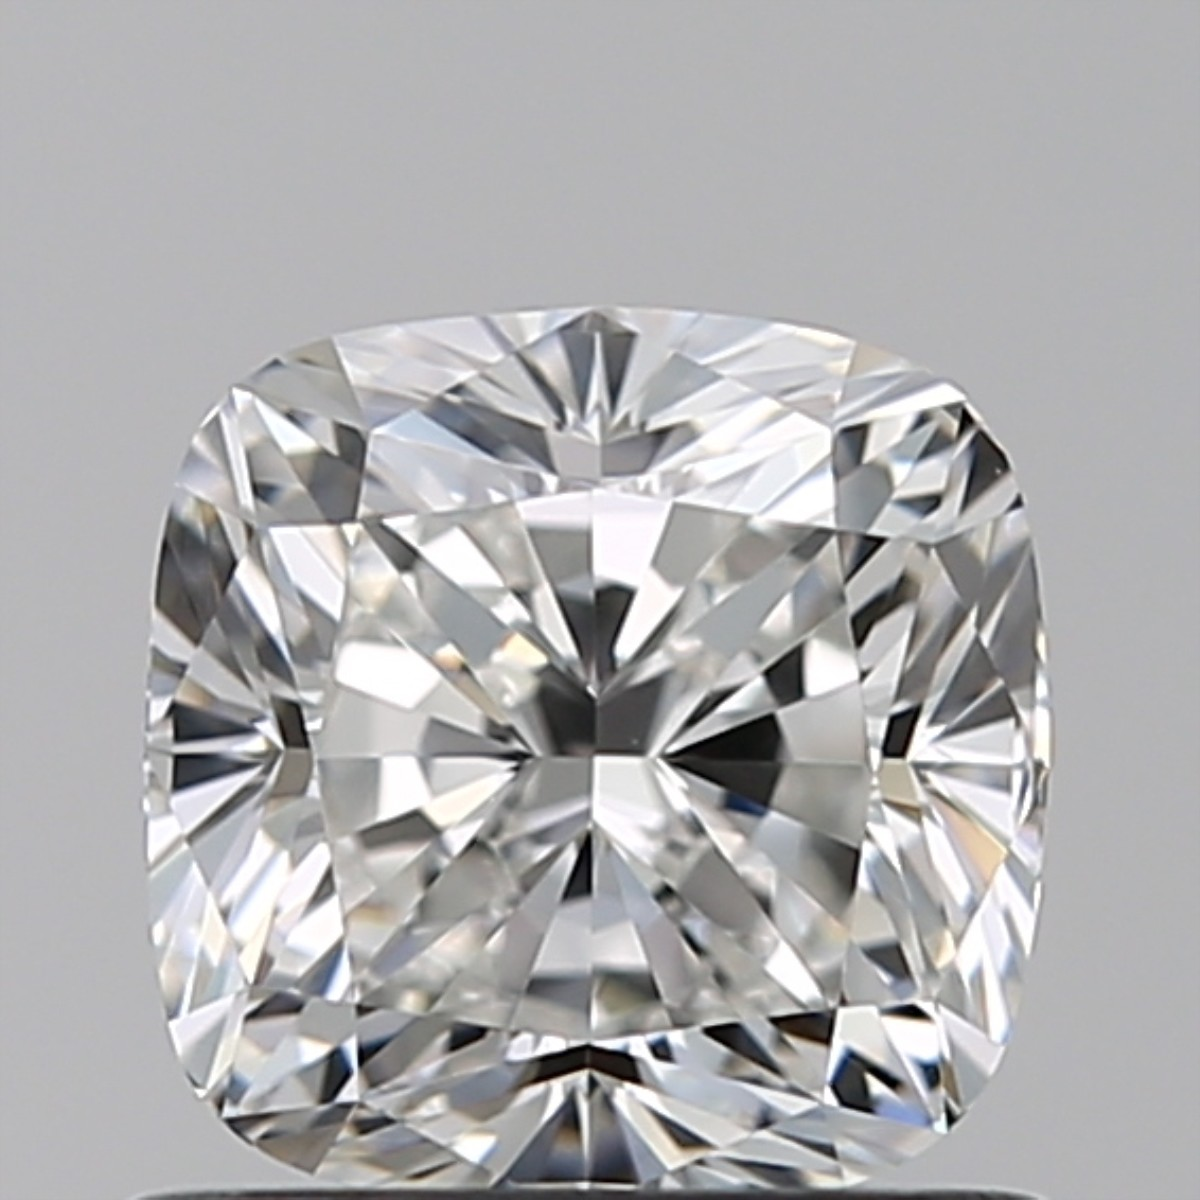 1.01 Carat Cushion Brilliant Diamond (G/VS1)